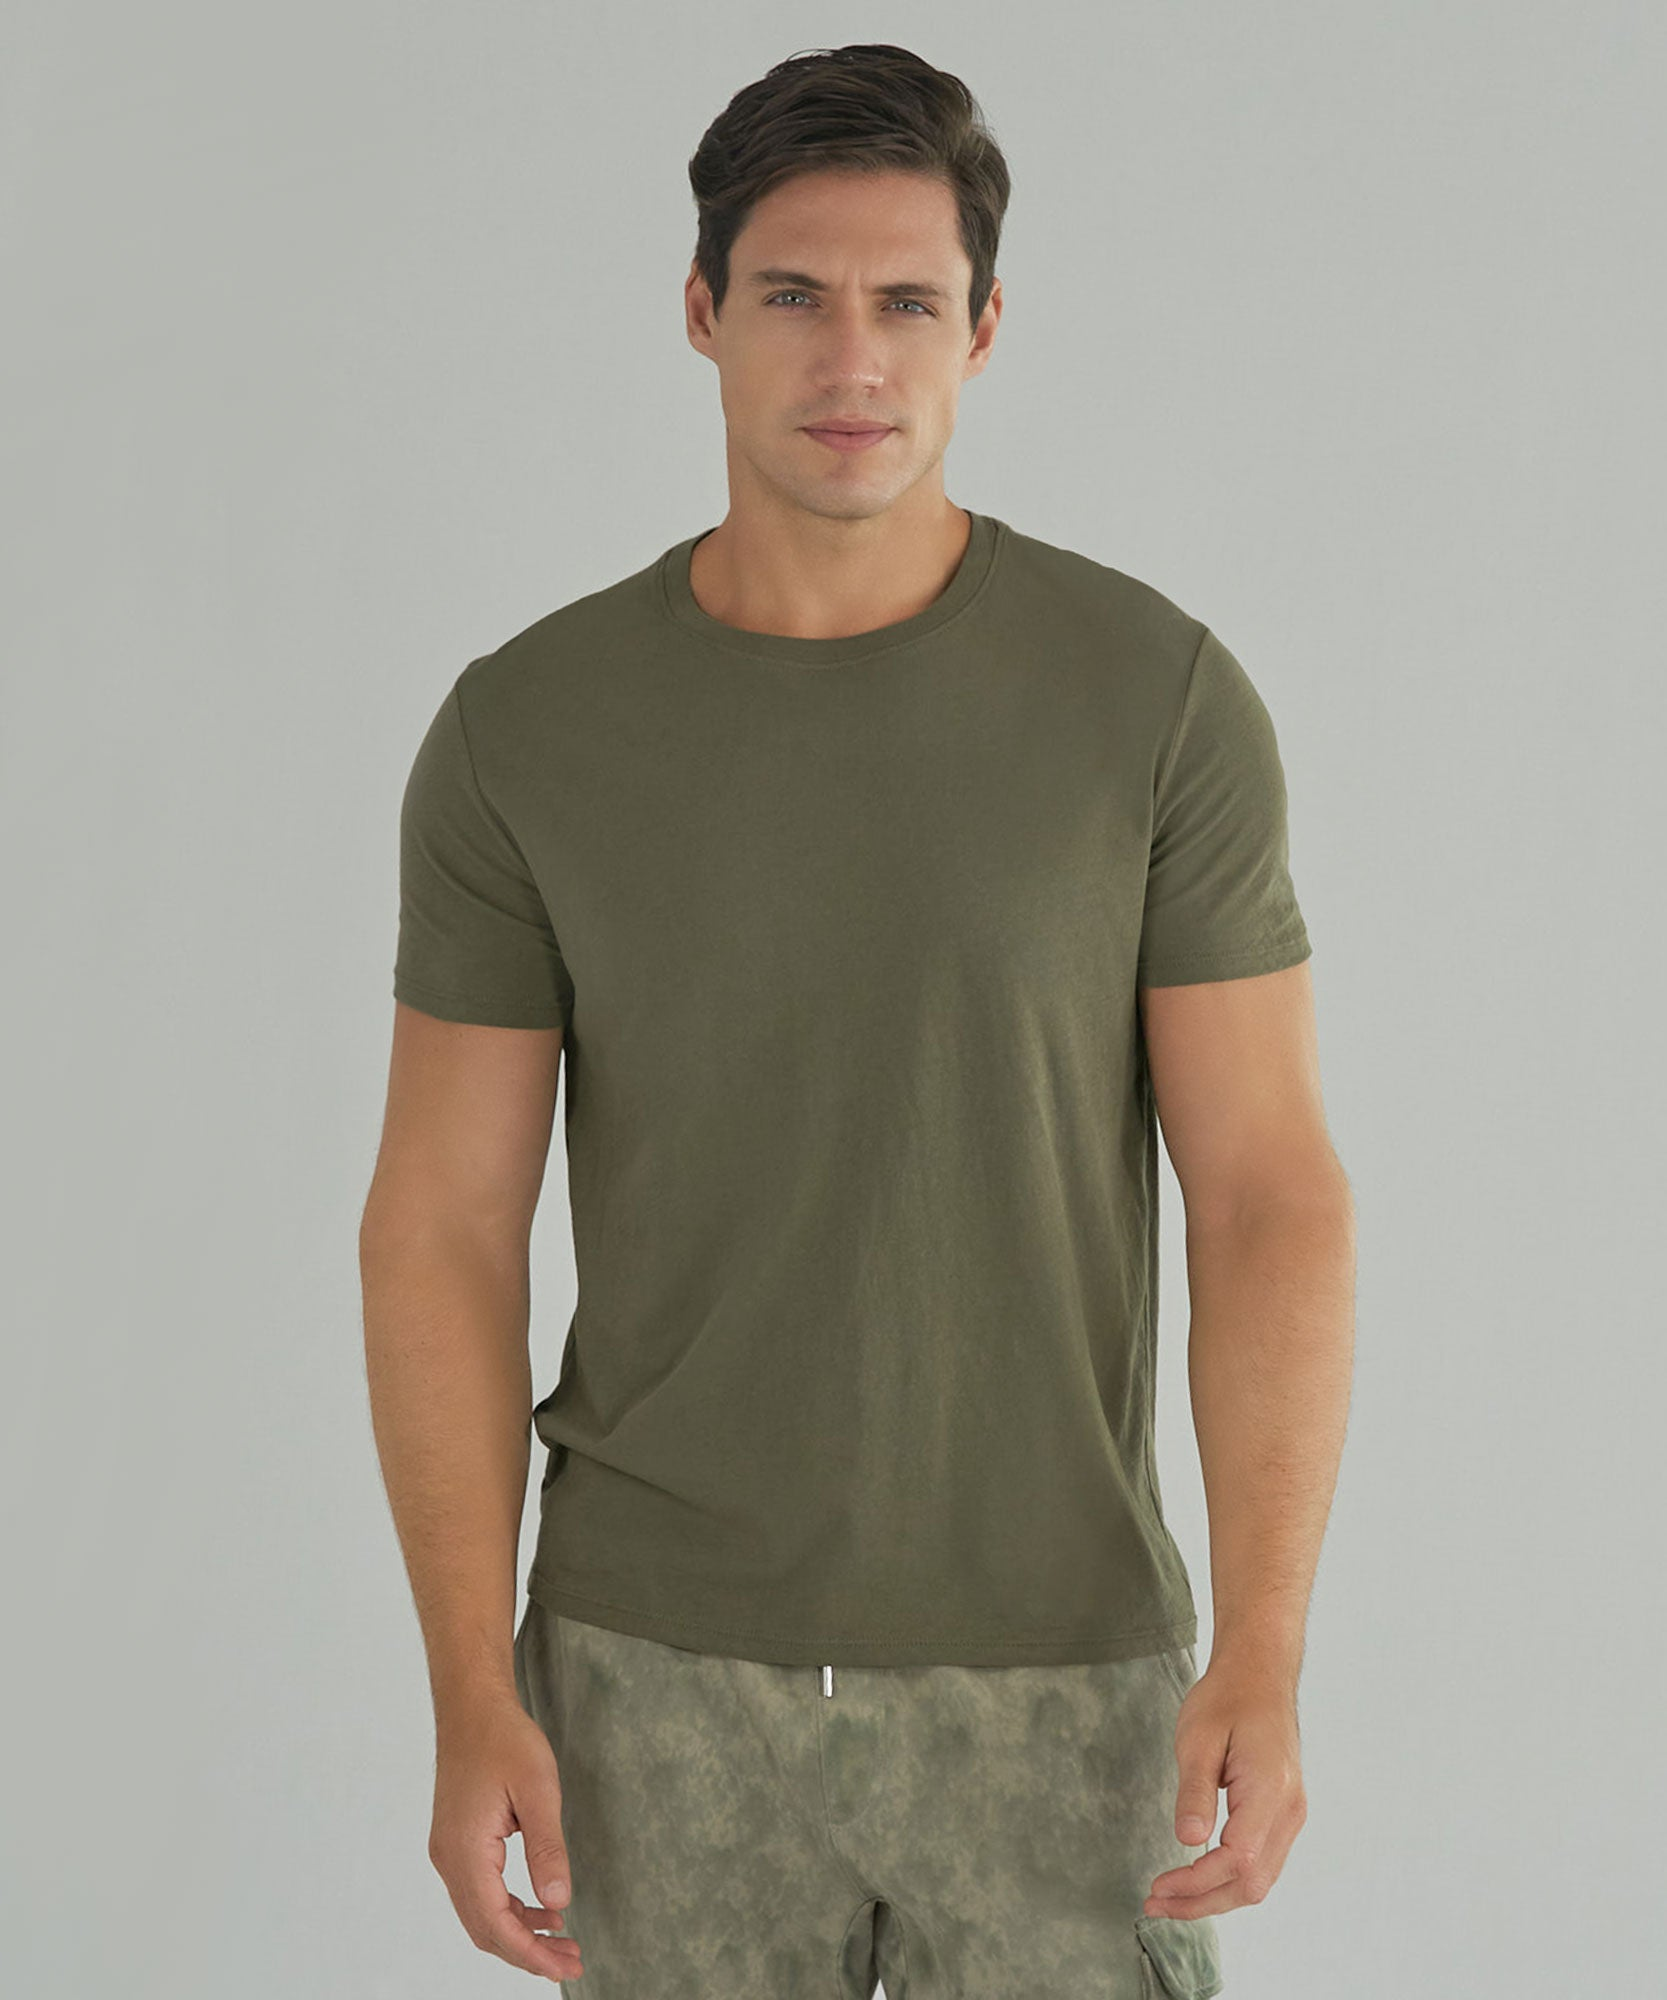 Army Classic Jersey Crew Neck Tee - Men's Short Sleeve T-shirt by ATM Anthony Thomas Melillo